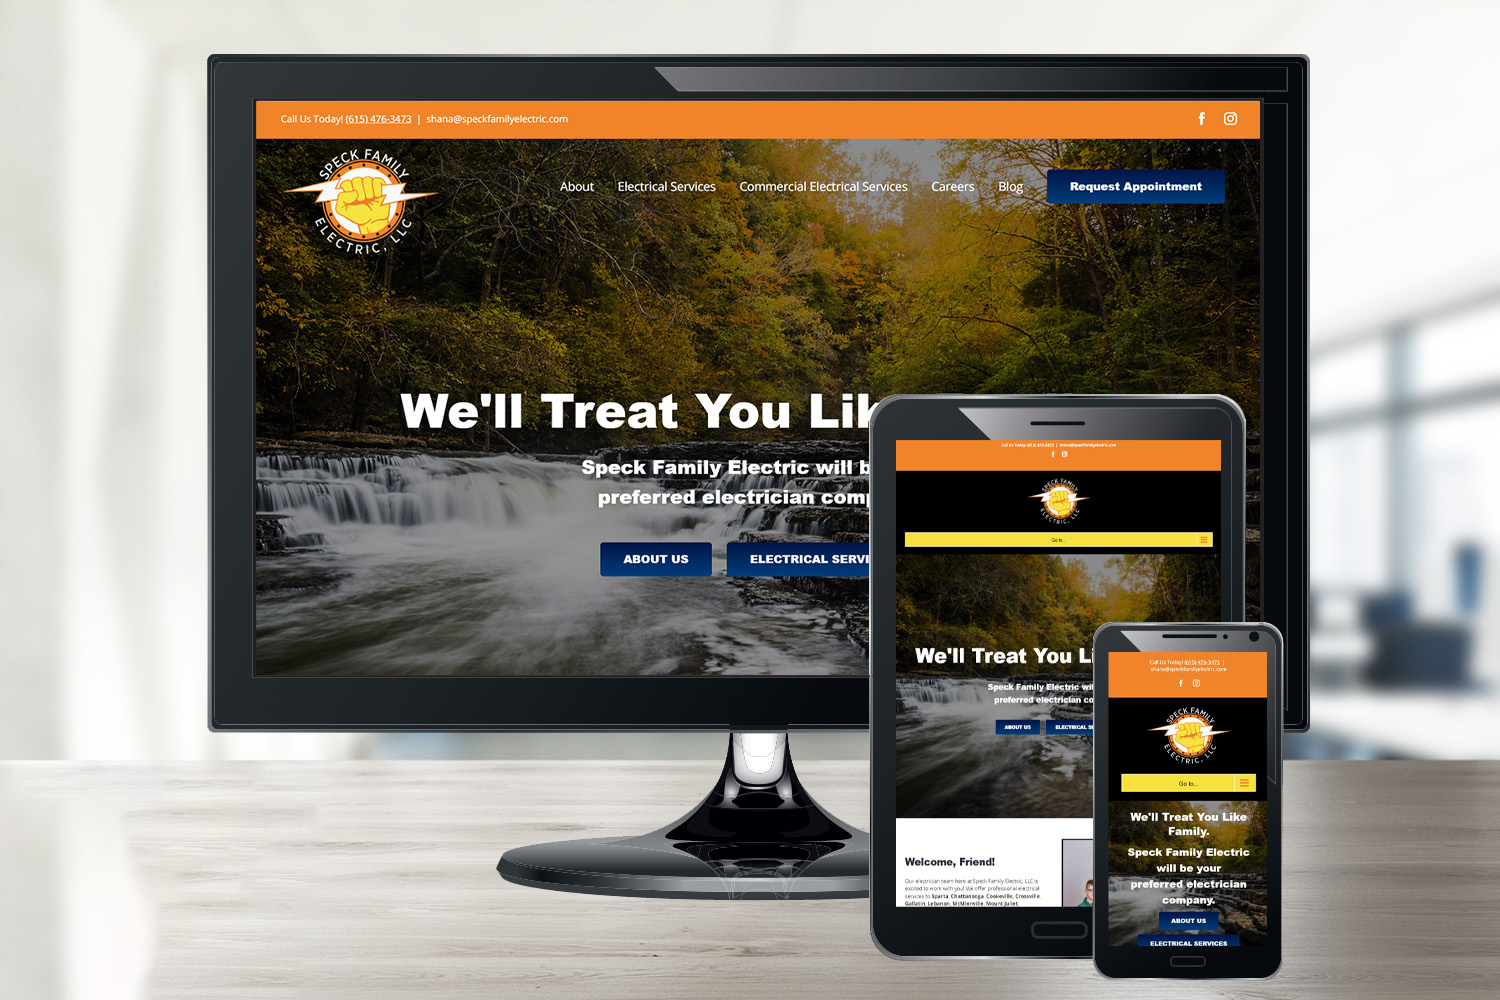 Service Industry Website for Speck Family Electric